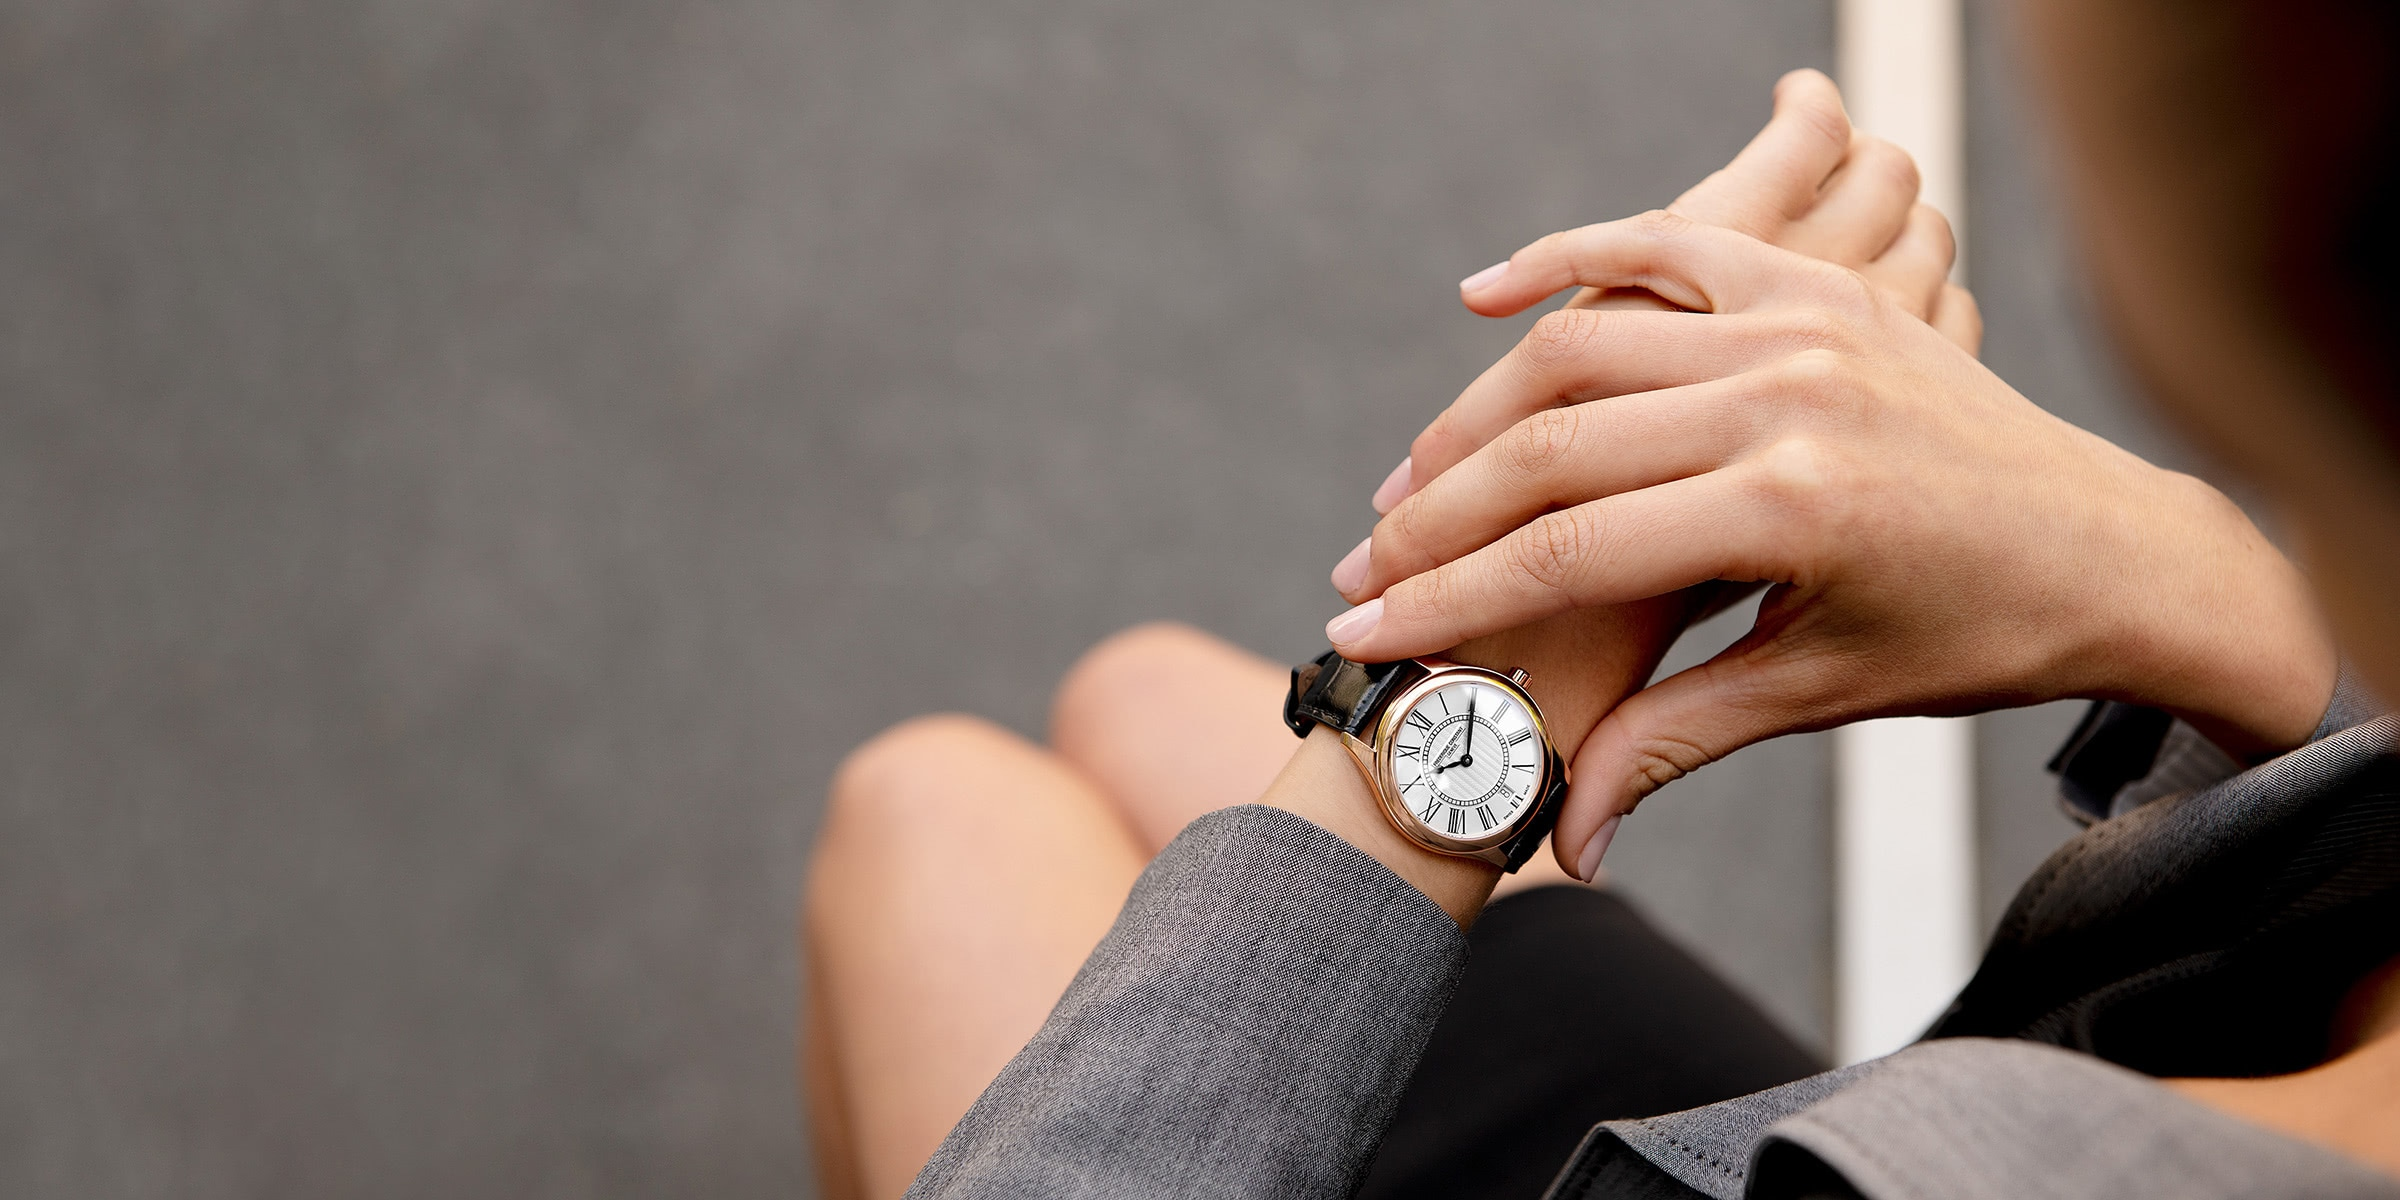 19 Best Watches For Women: Guide To Affordable Luxury Timepieces